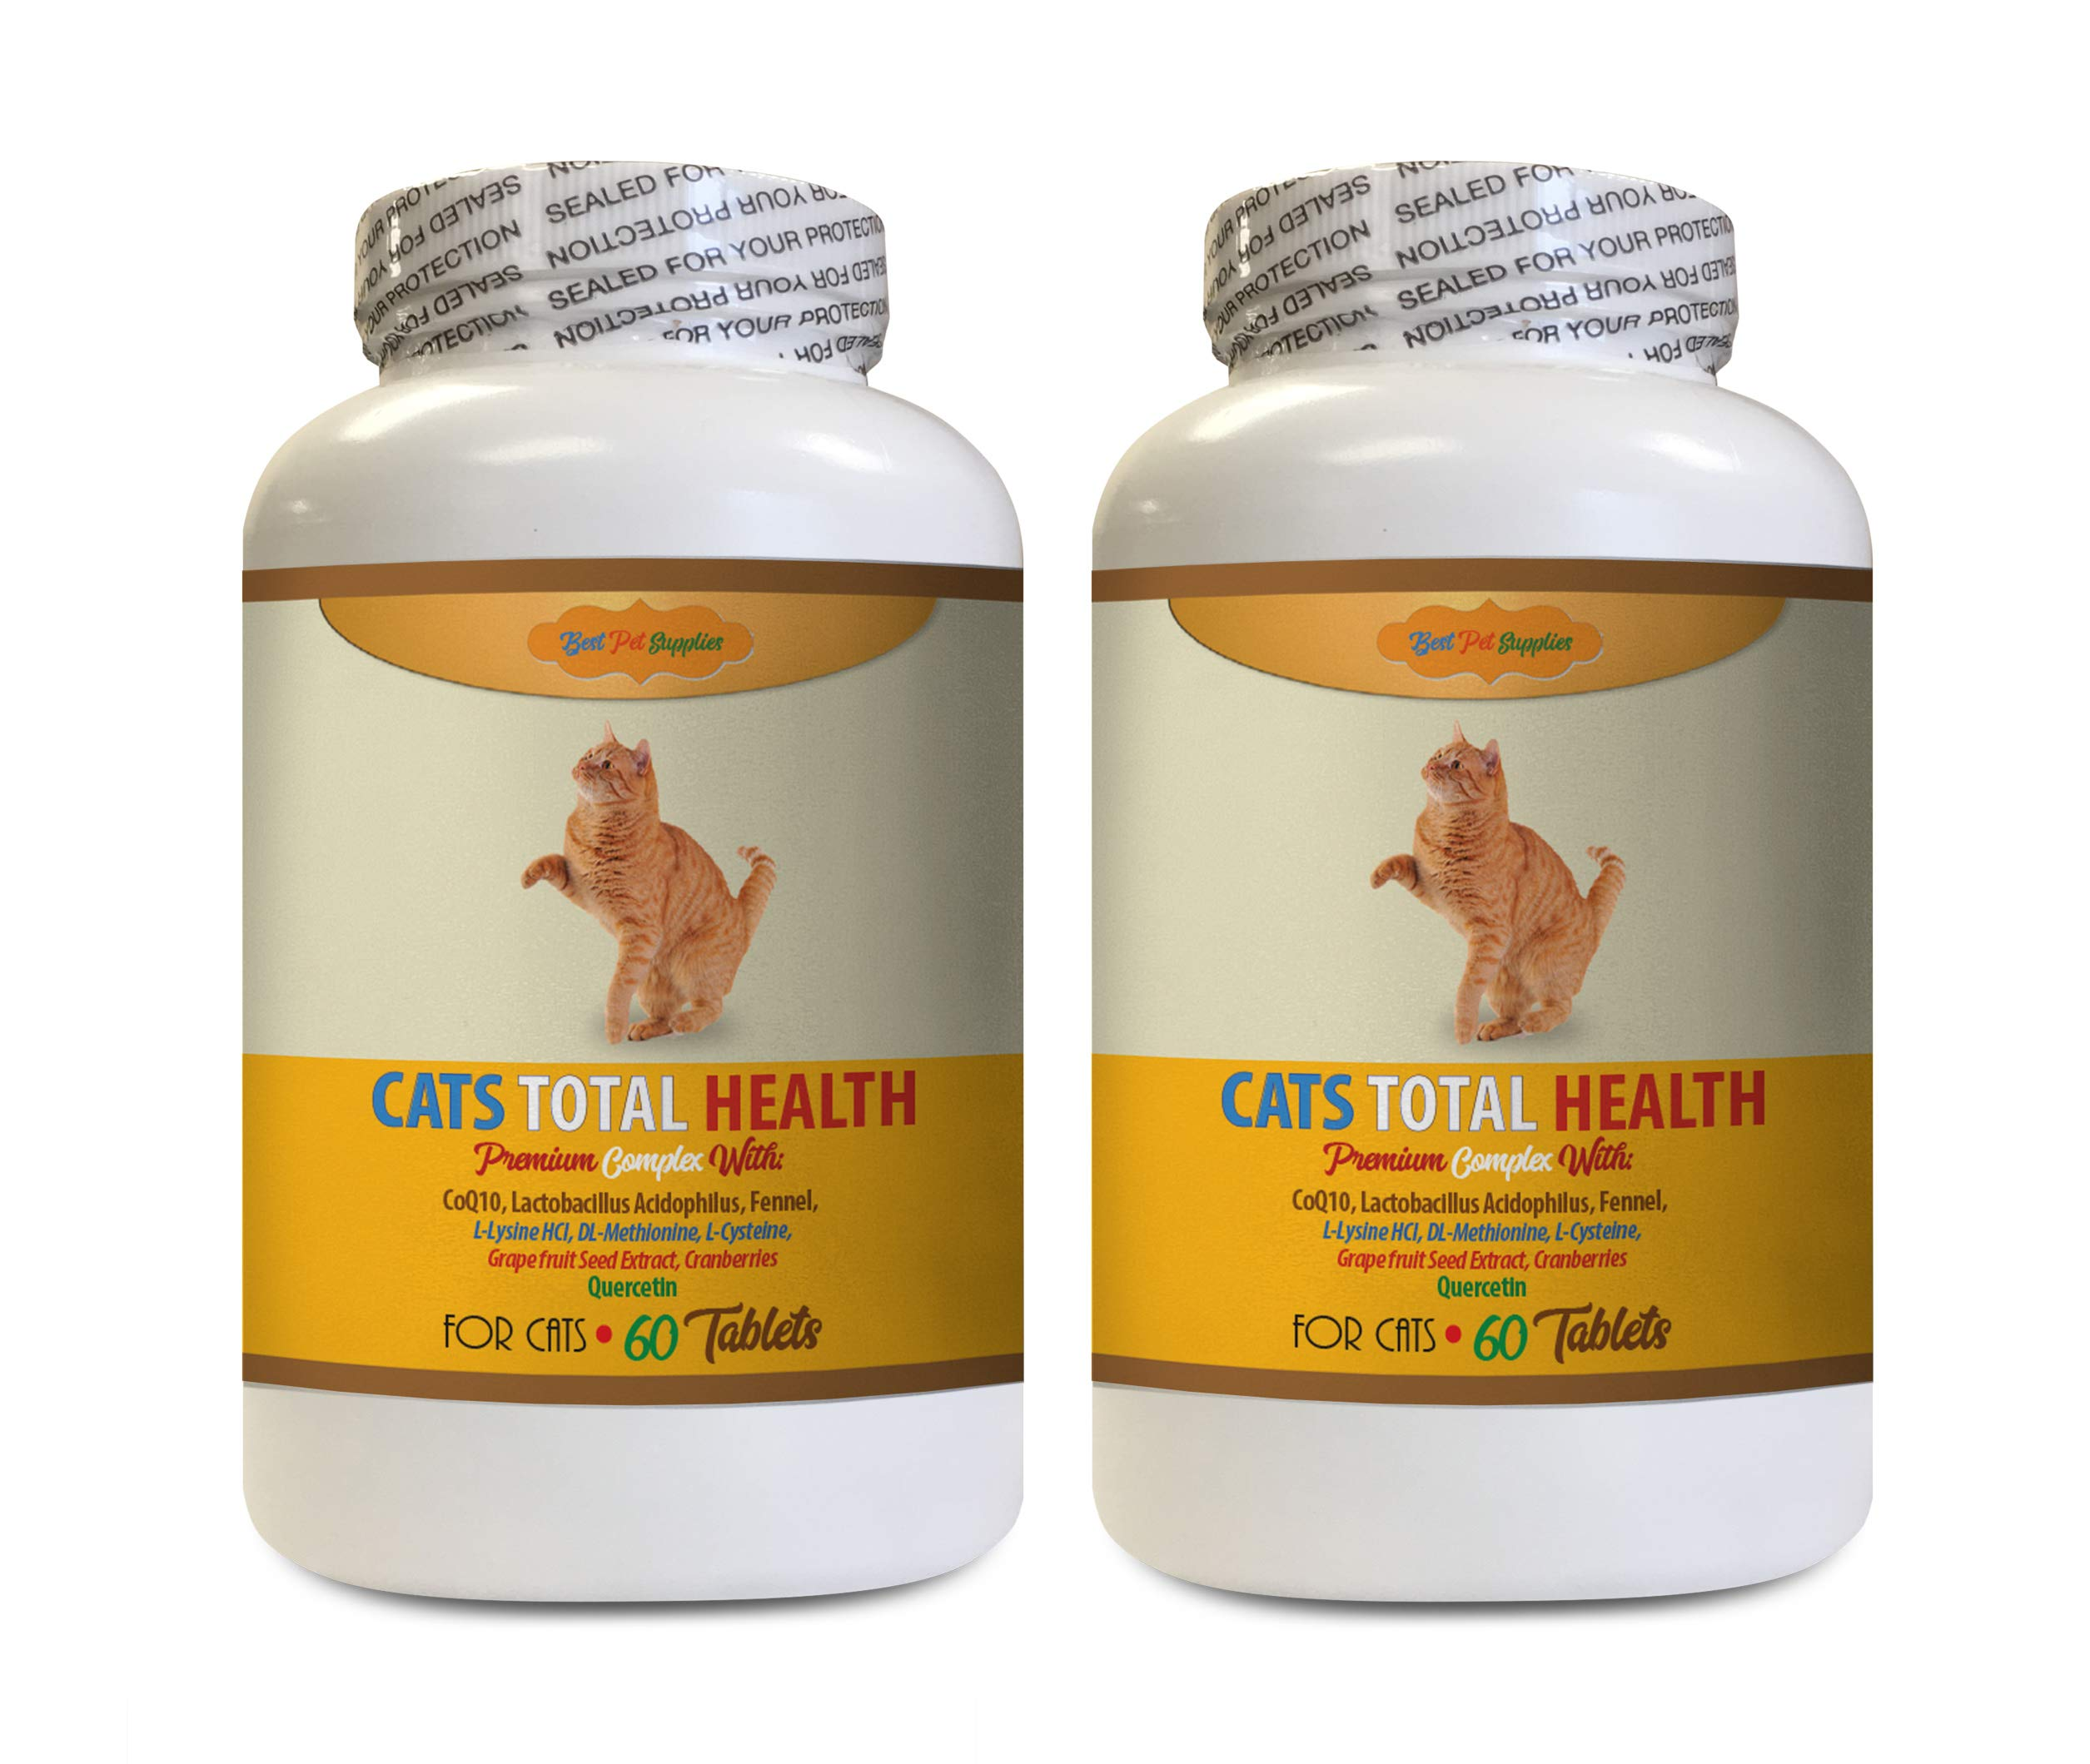 BEST PET SUPPLIES LLC cat Skin and Itch Relief Treats - Cats Total Health Complex - Premium Formula - Coat Joint Oral Eye Immune Health - cat Immune Powder - 120 Tables (2 Bottles) by BEST PET SUPPLIES LLC (Image #1)